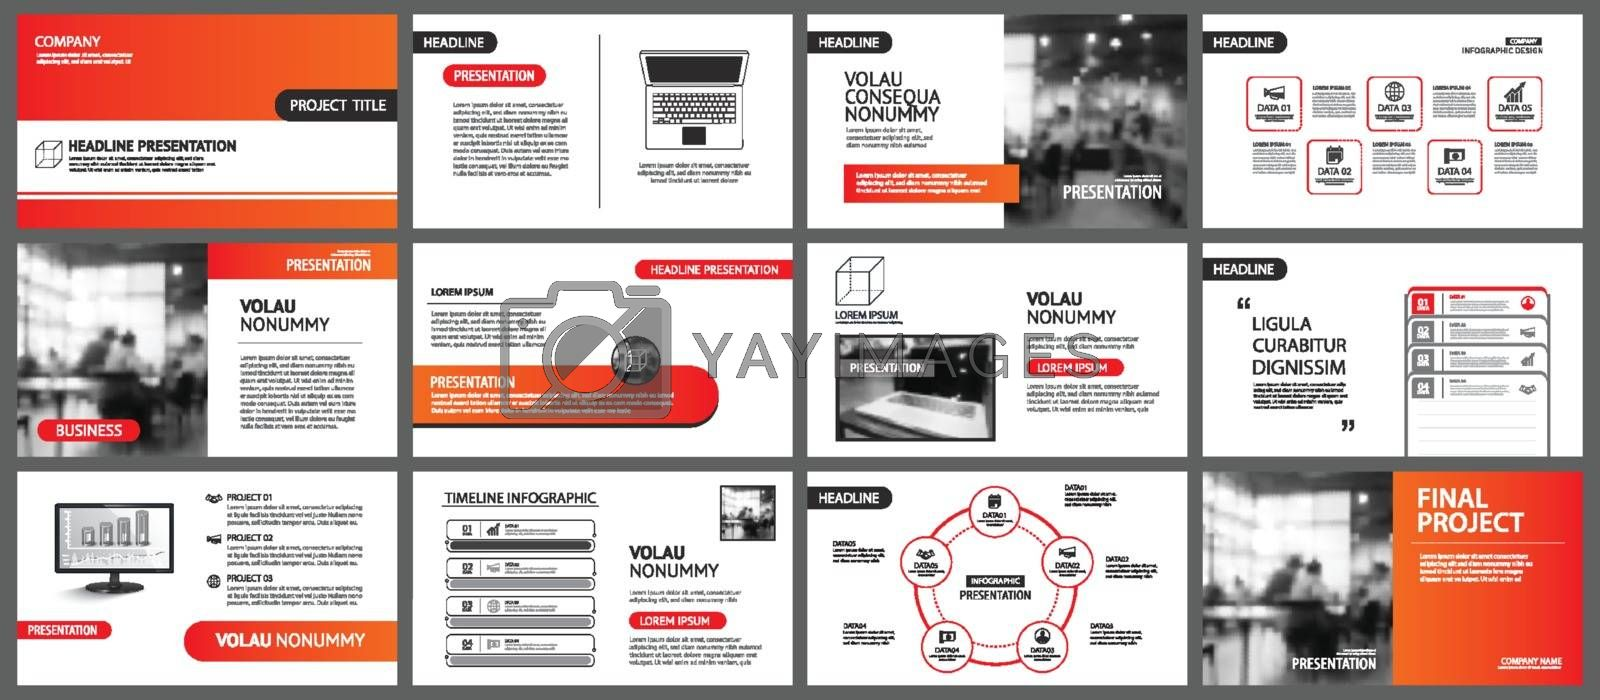 Presentation and slide layout background. Design red and orange gradient geometric template. Use for business annual report, flyer, marketing, leaflet, advertising, brochure, modern style.